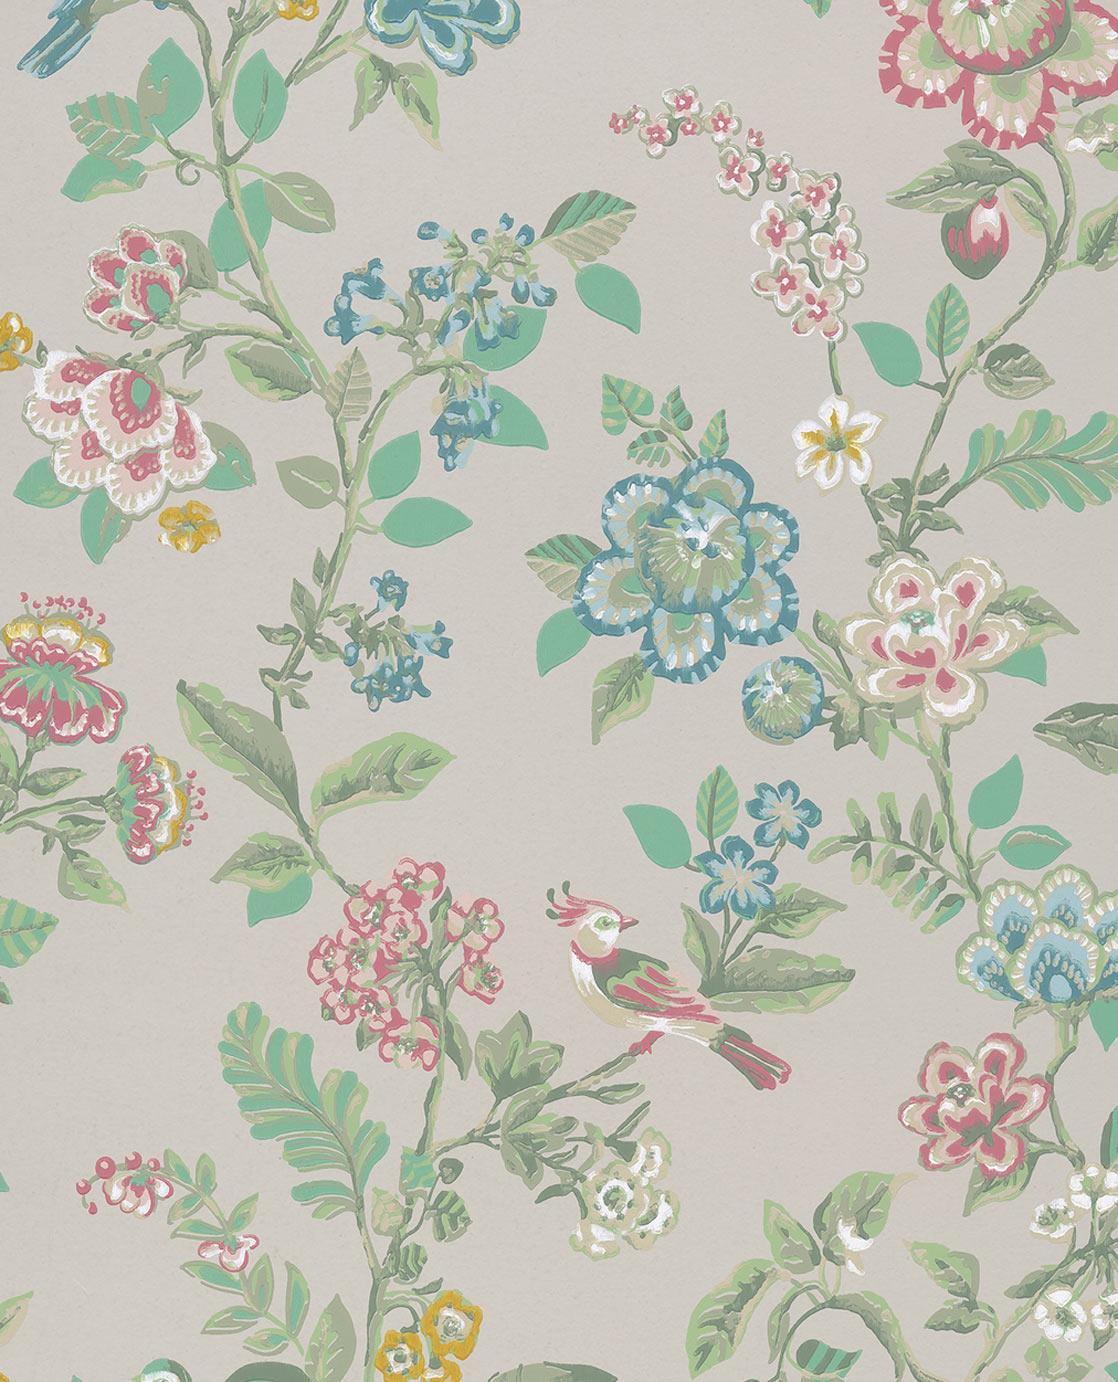 The wallpaper is Pip Studio No. 6, Beige , Multi Color, 10 x 0,52